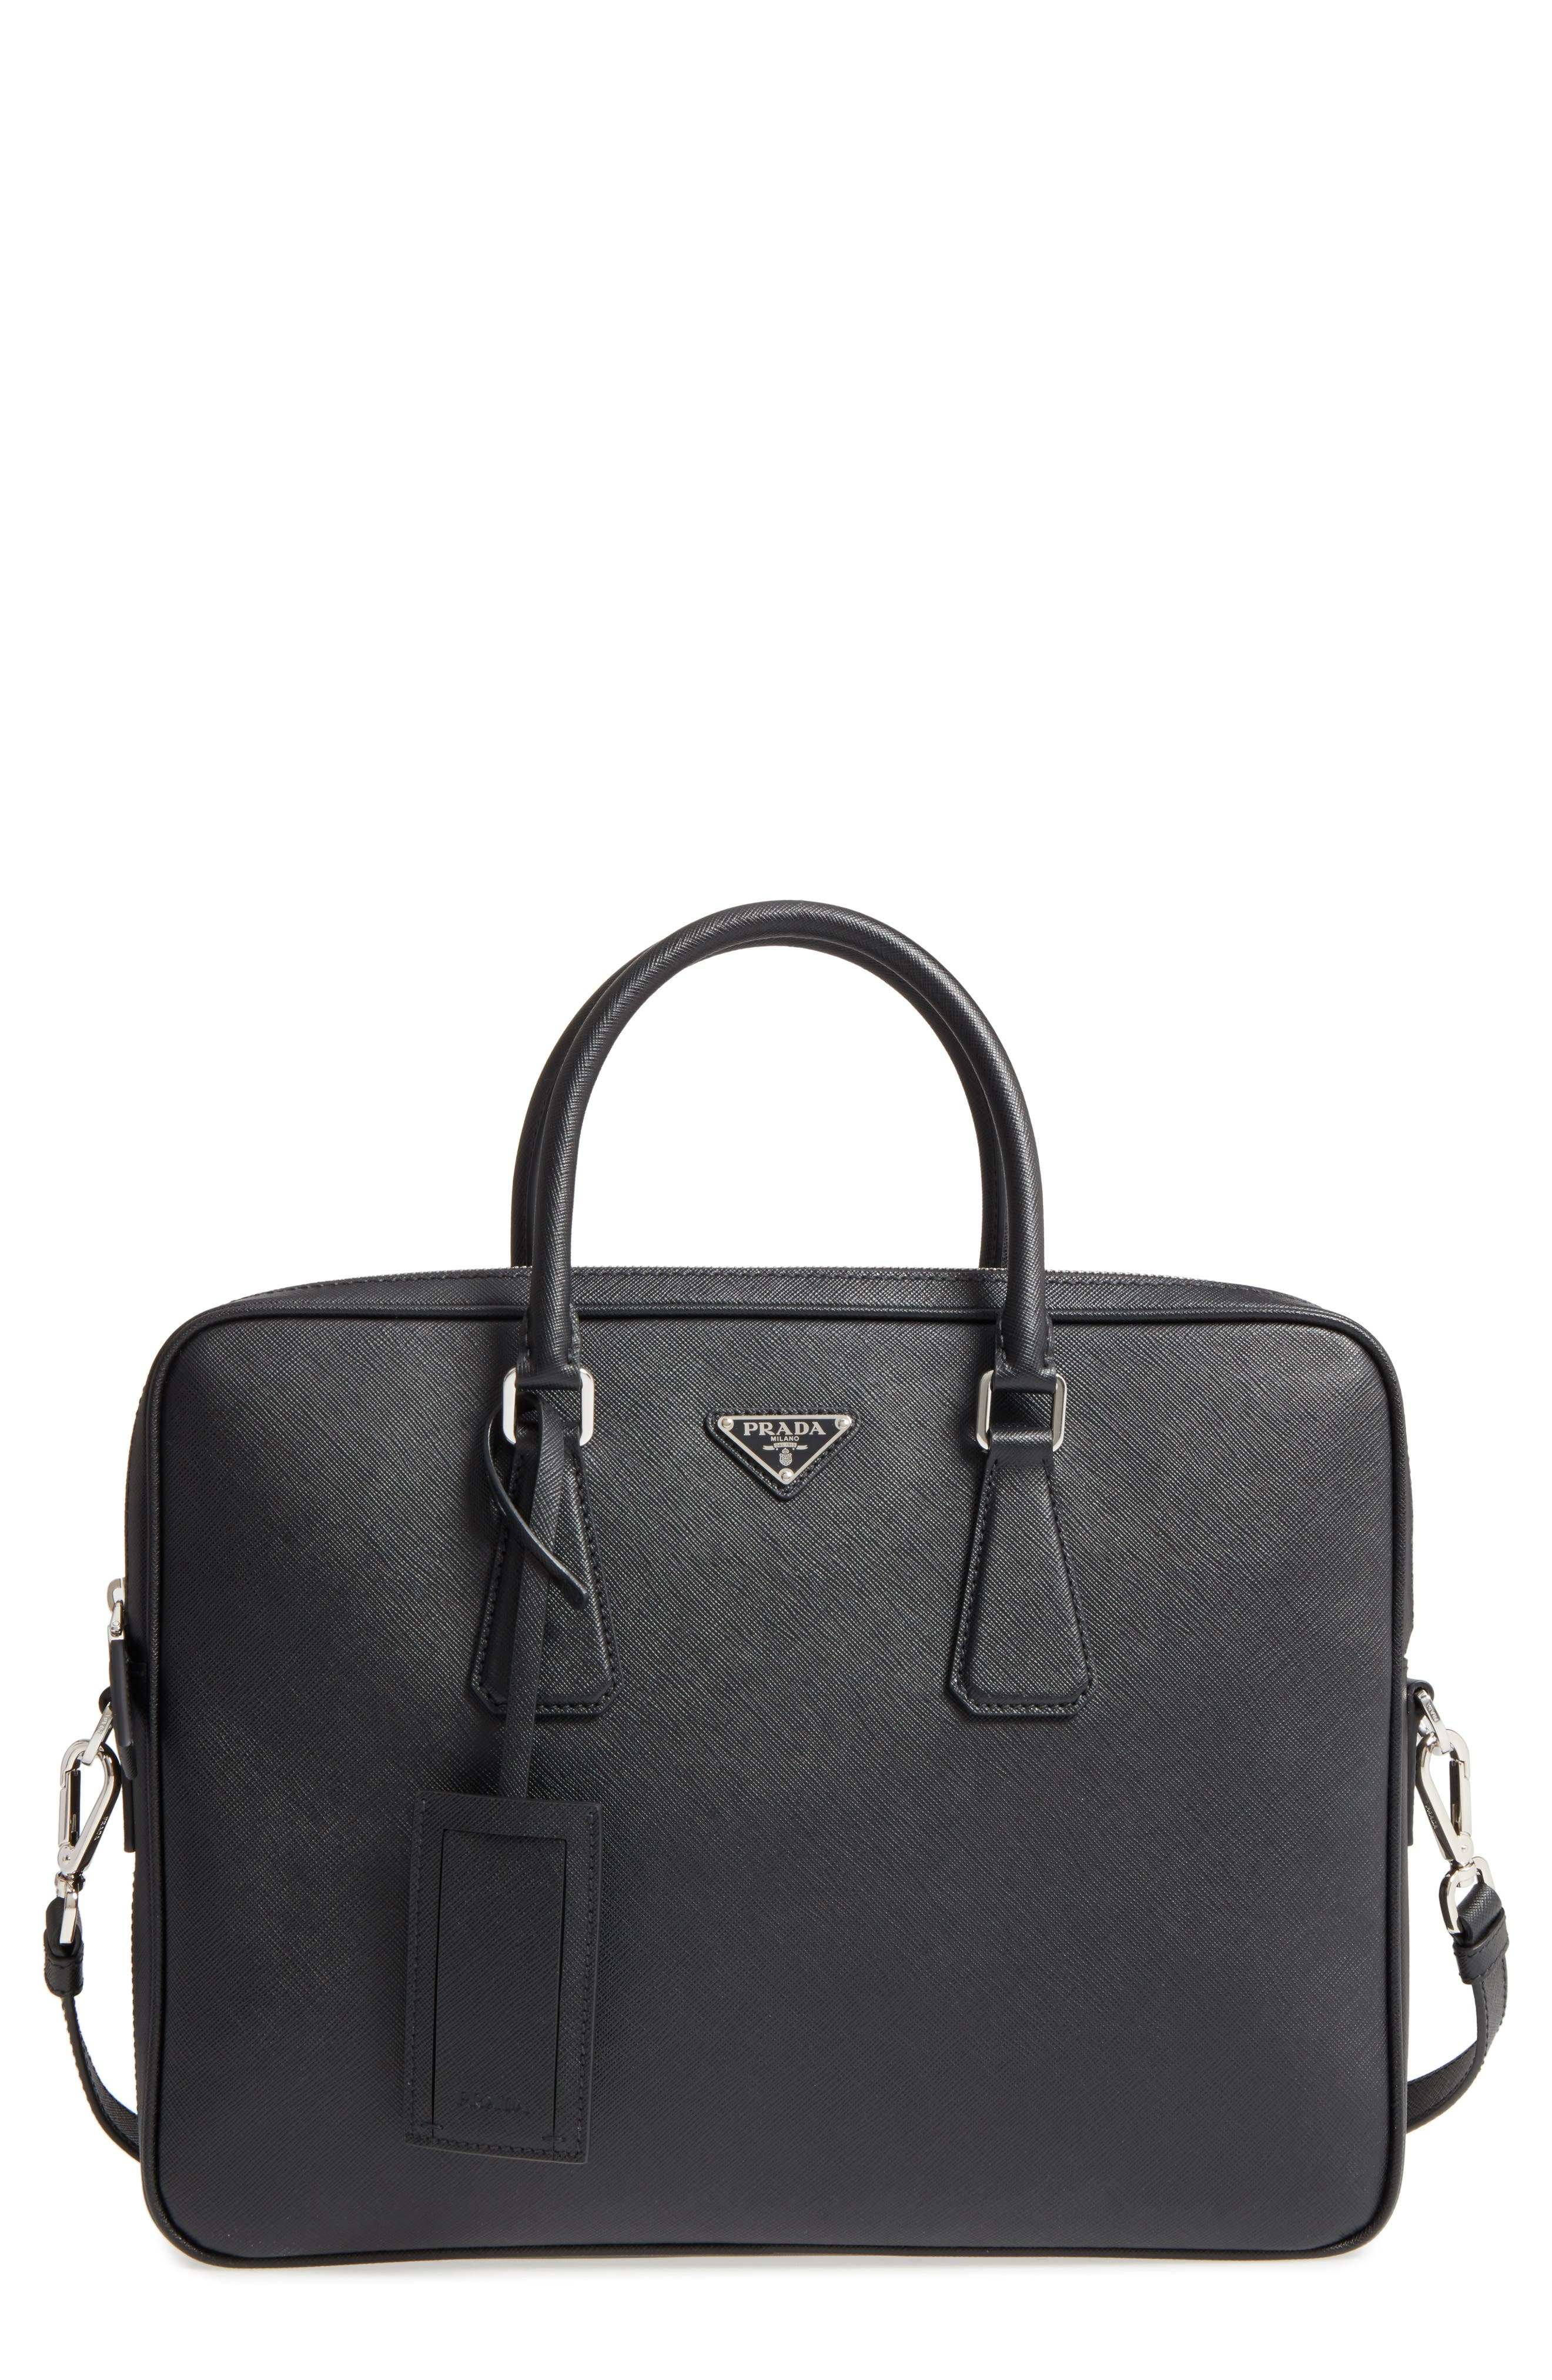 Saffiano Leather Briefcase,                         Main,                         color, Black